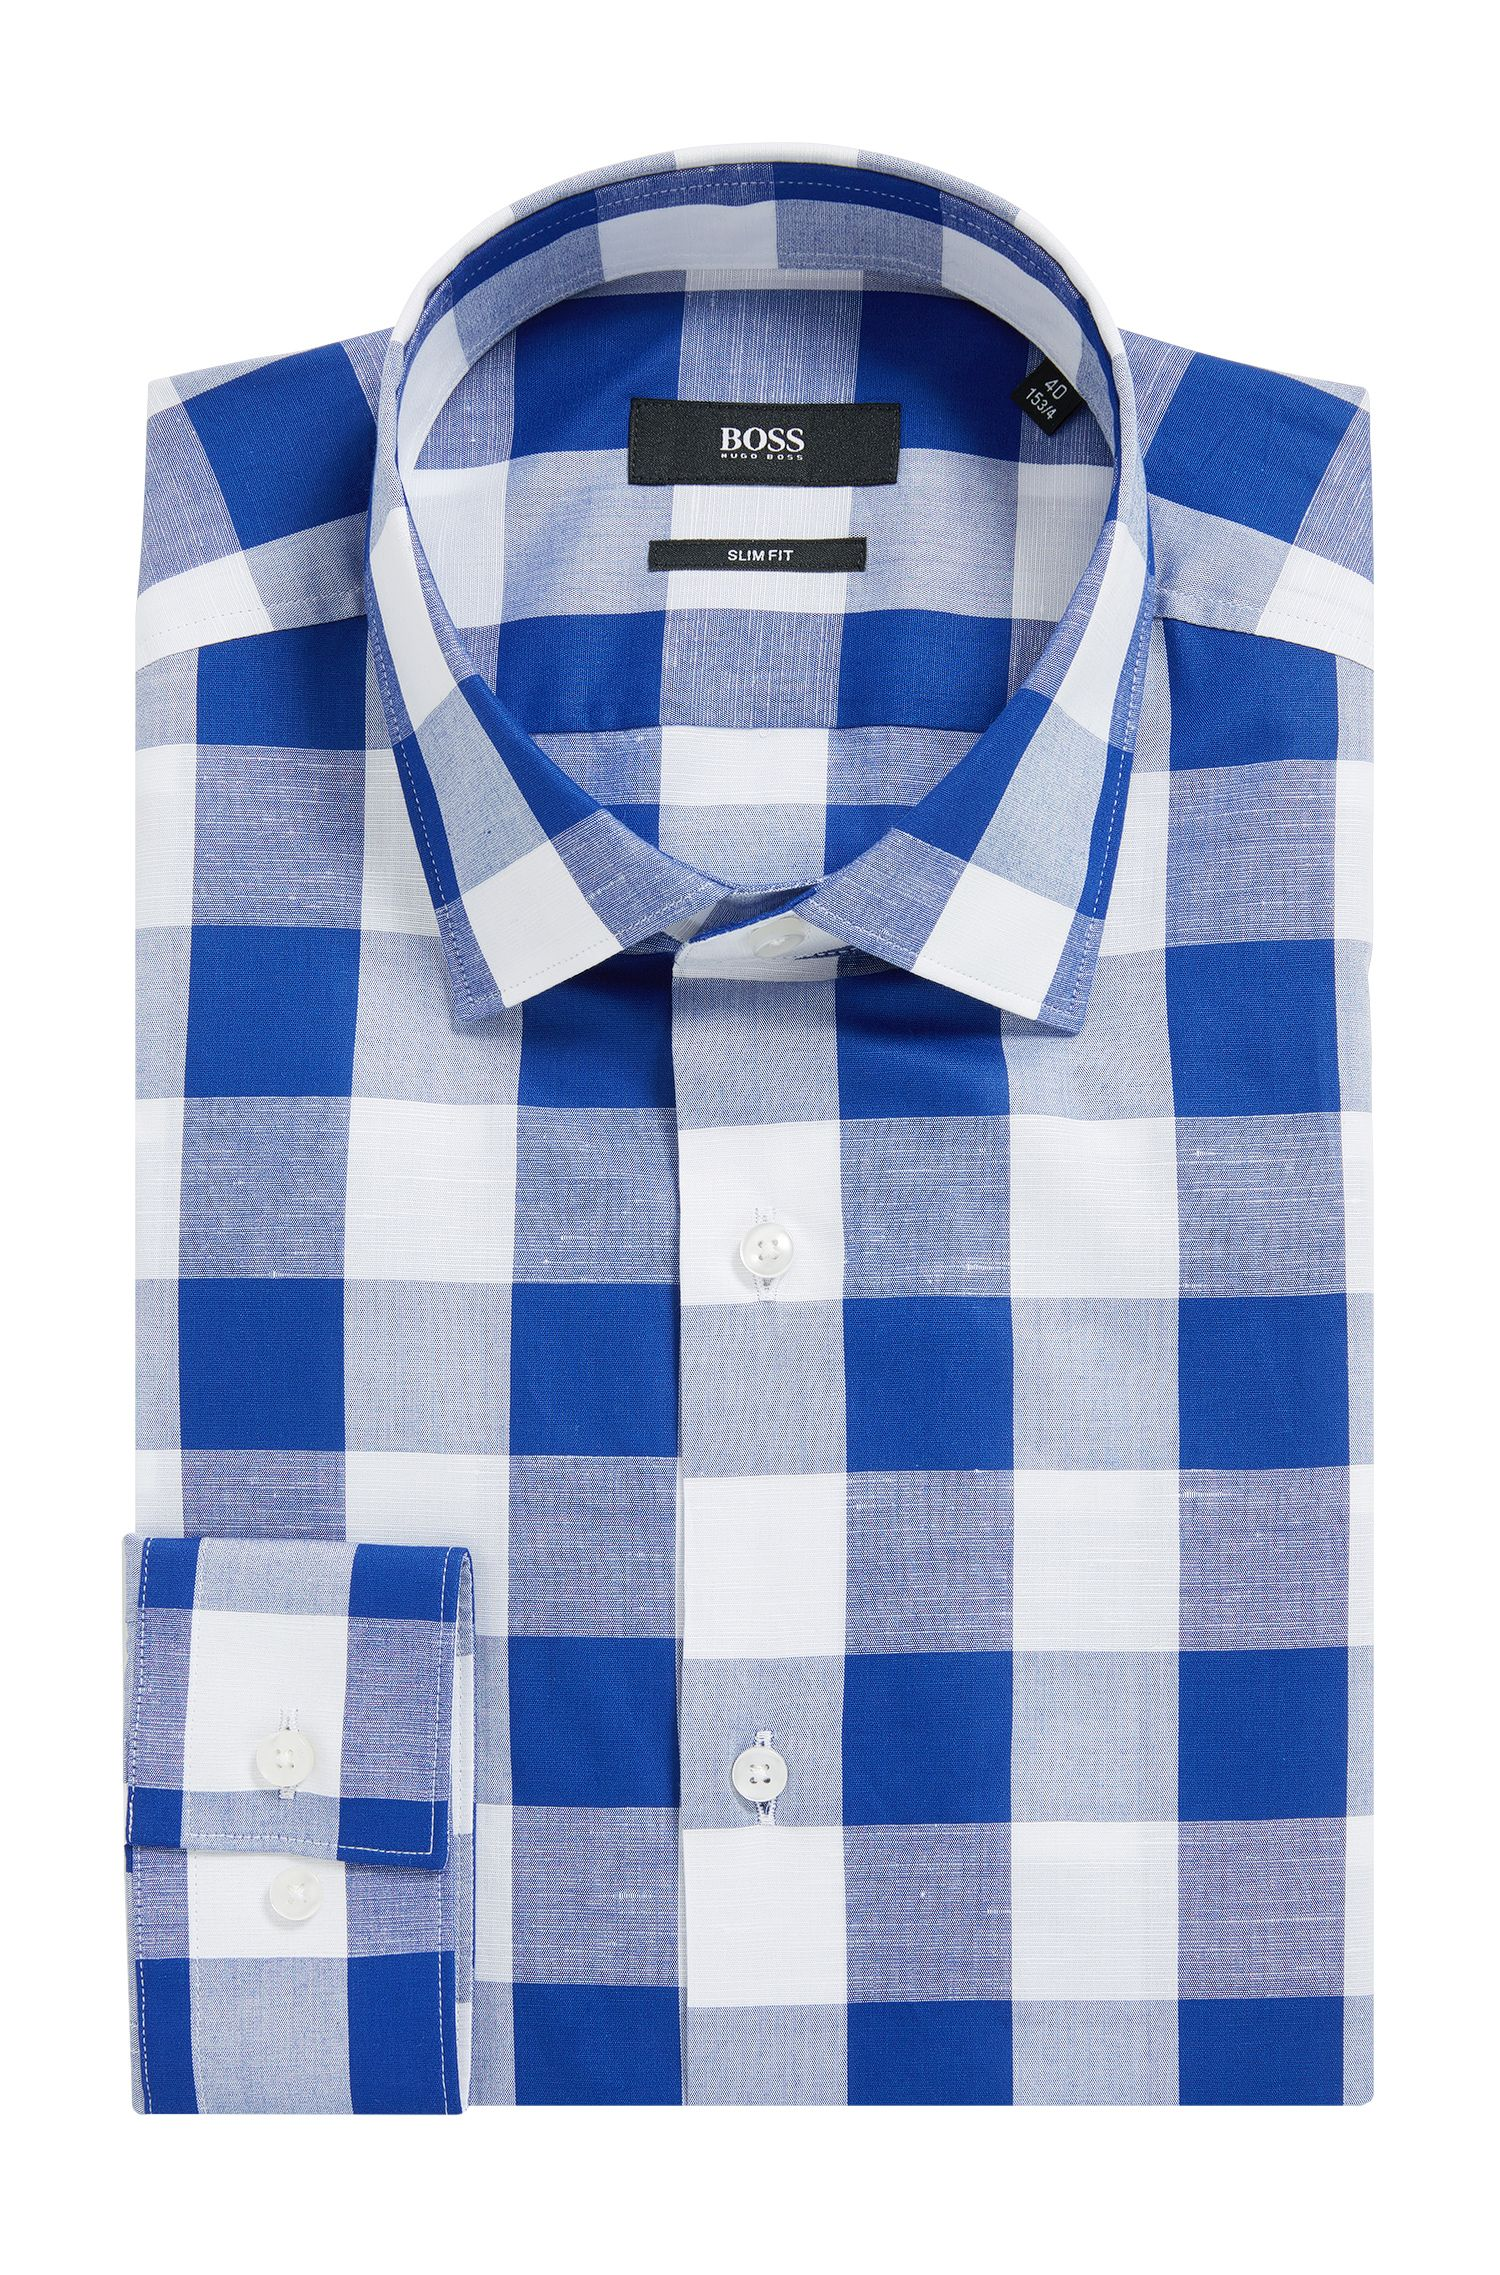 Checked Cotton Linen Dress Shirt, Slim Fit | Ismo